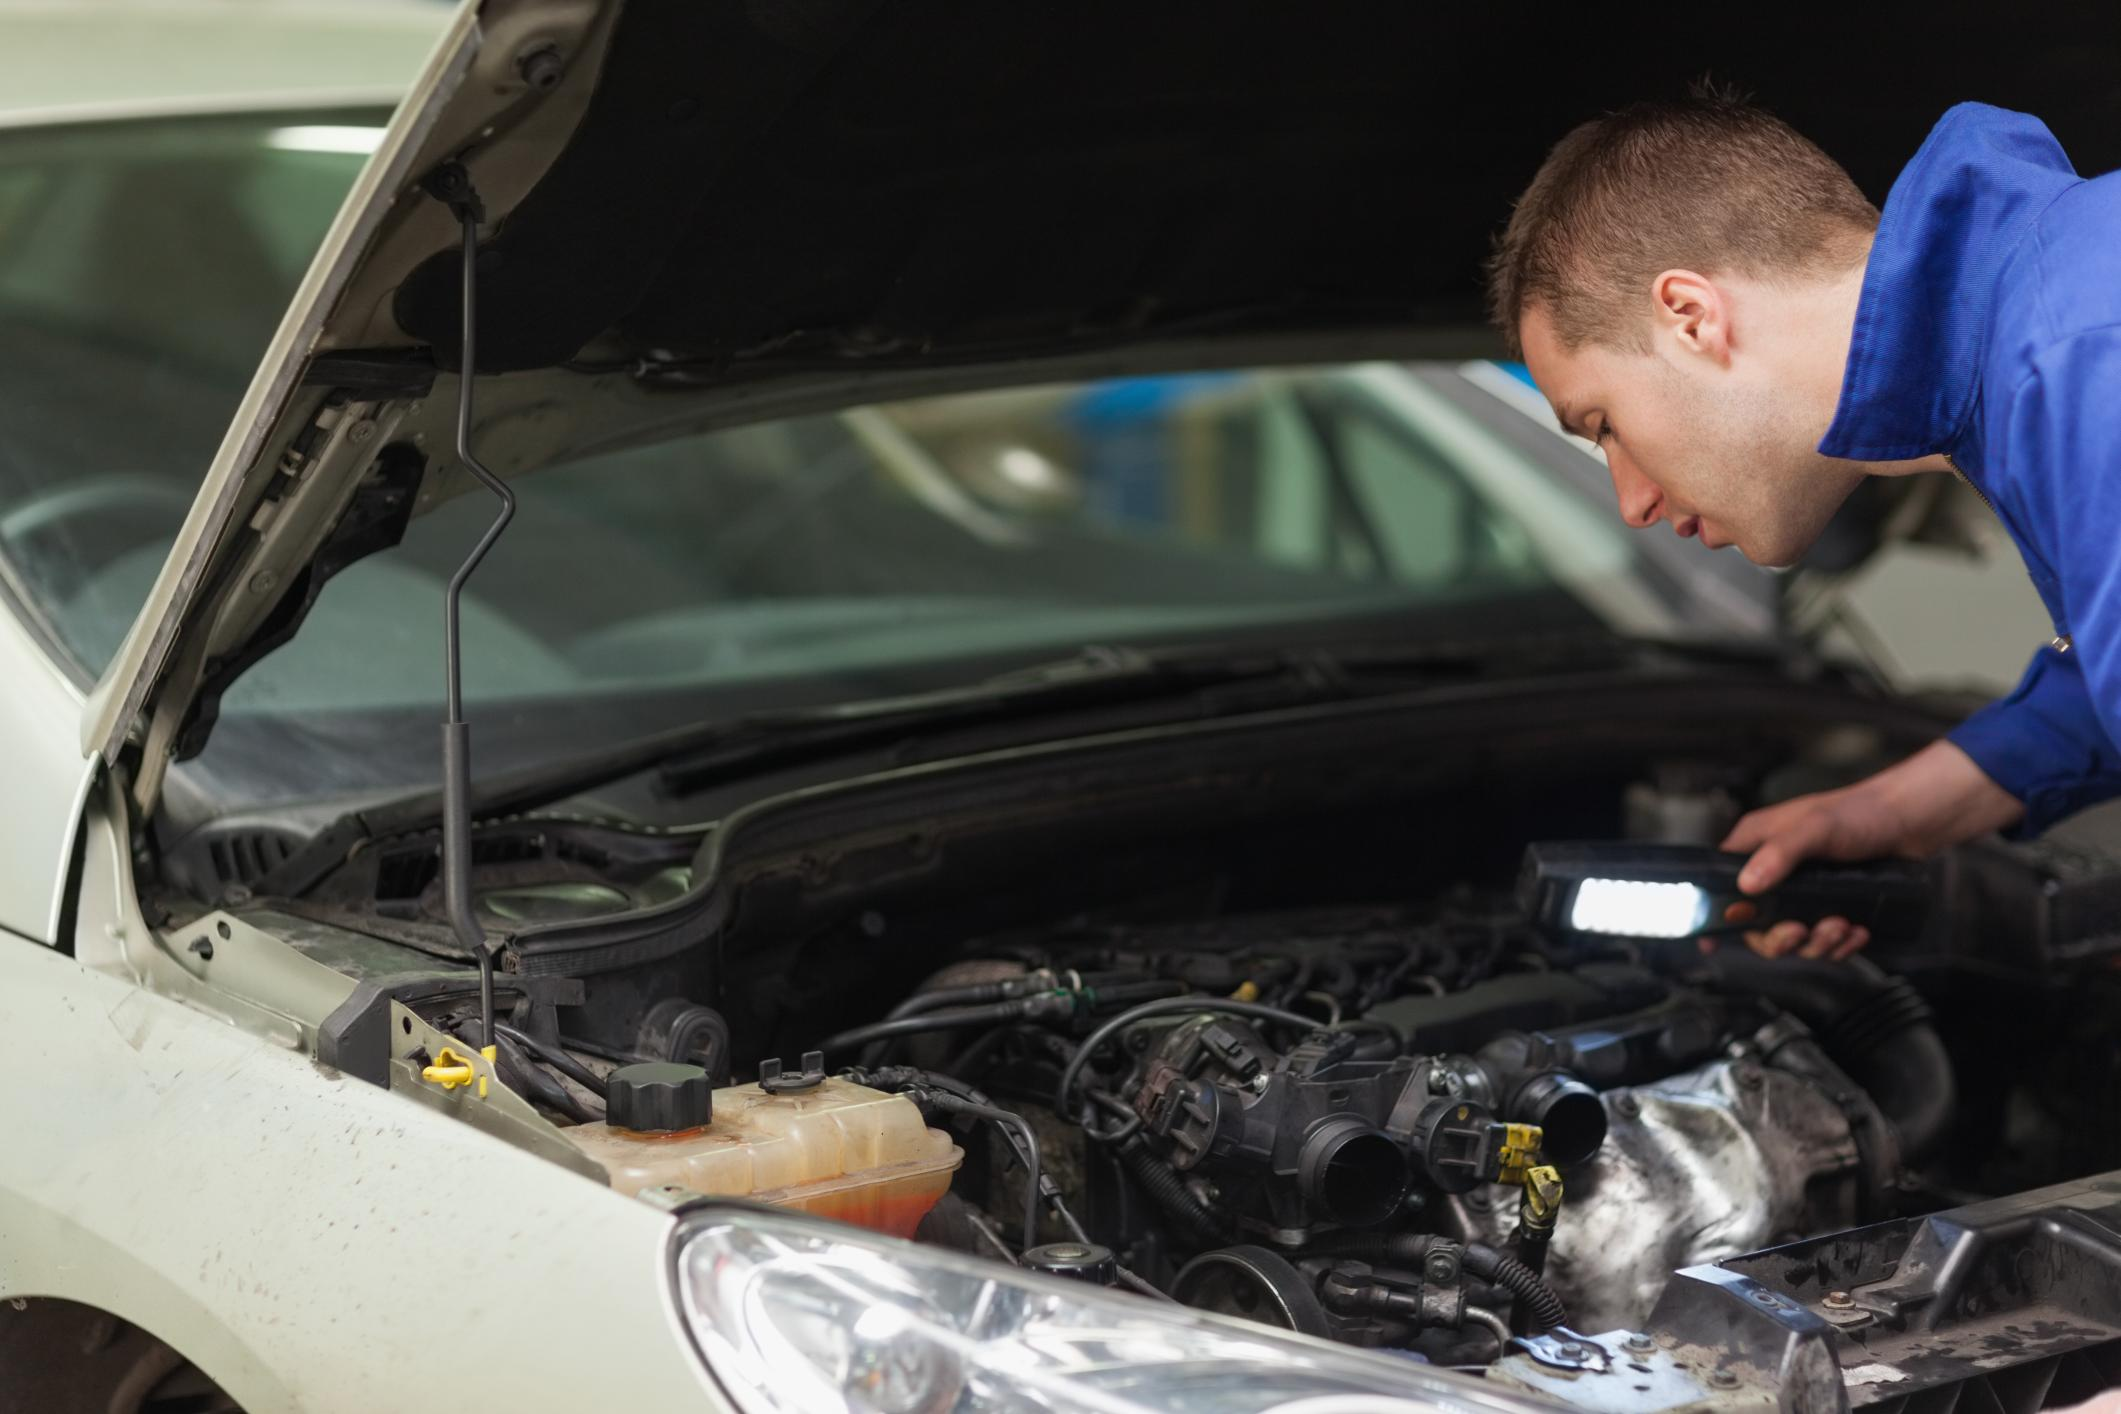 This is a picture of an on-site vehicle repair service.